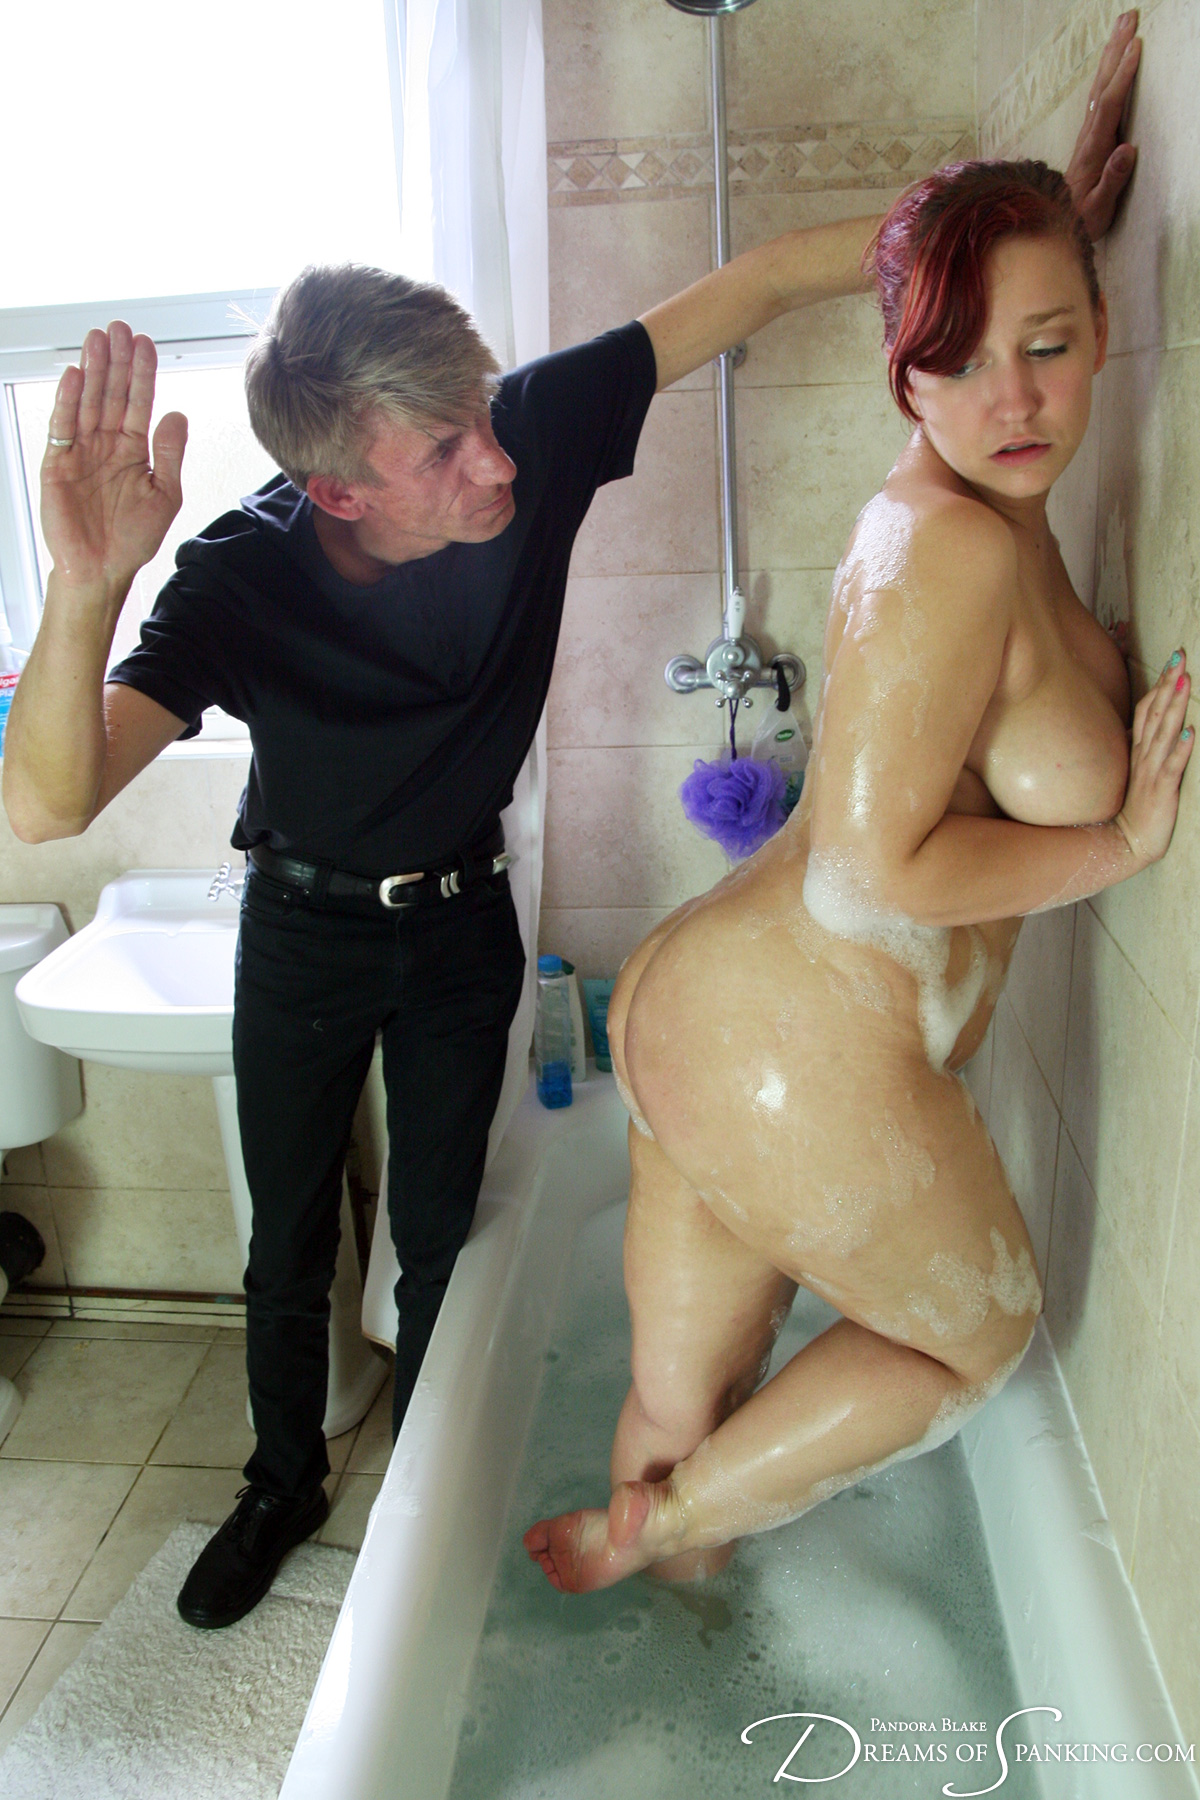 Mila Kohl spanked in the bath at Dreams of Spanking